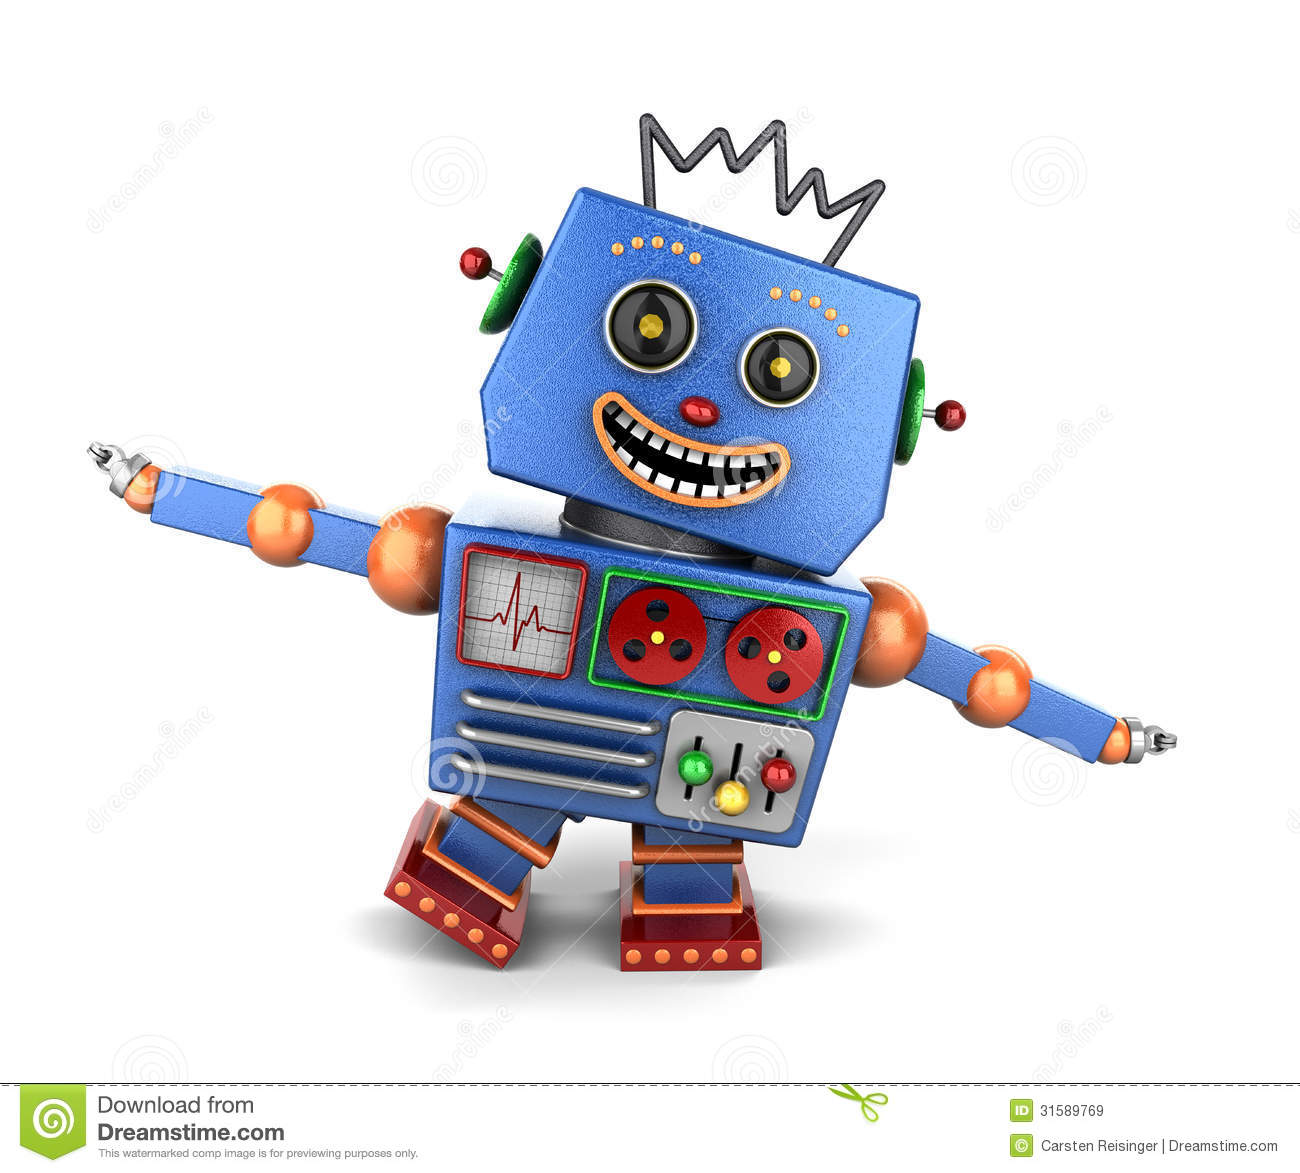 Cartoon Robot Toy : Toy robot clipart suggest